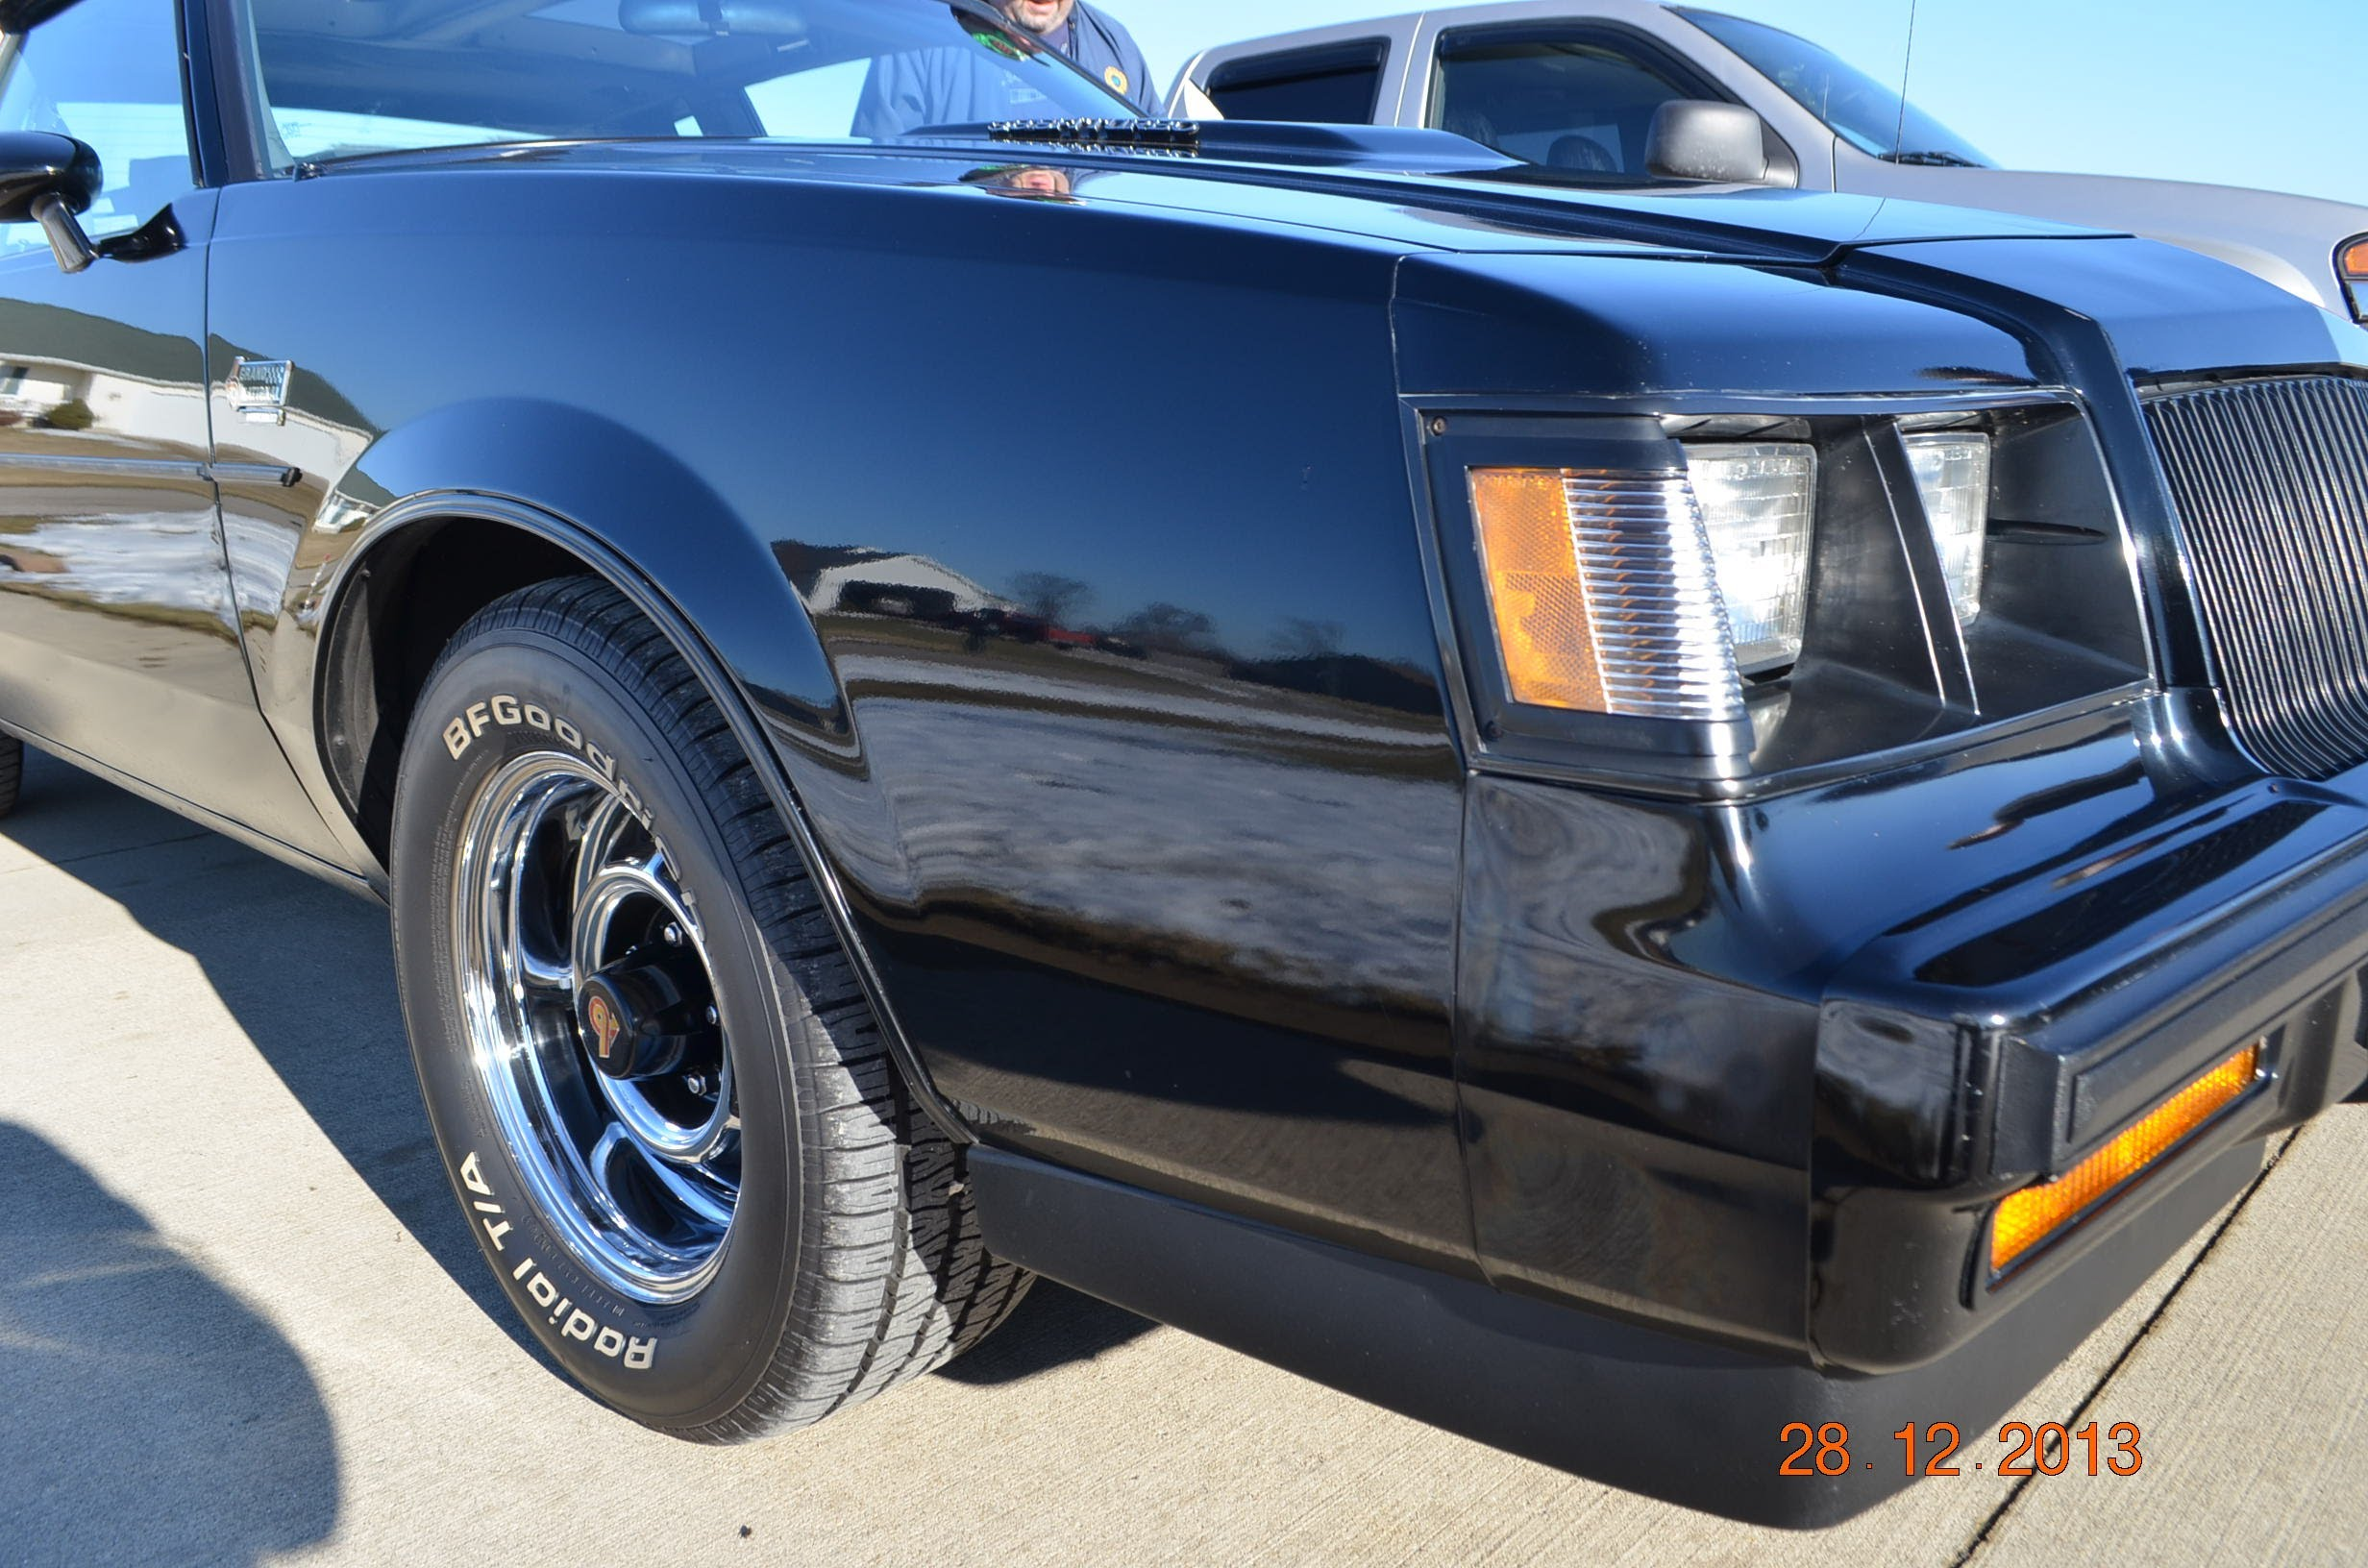 Cars Sale by Owner Inspirational 1987 Buick Grand National for Sale One Owner Ann Arbor Michigan Auto